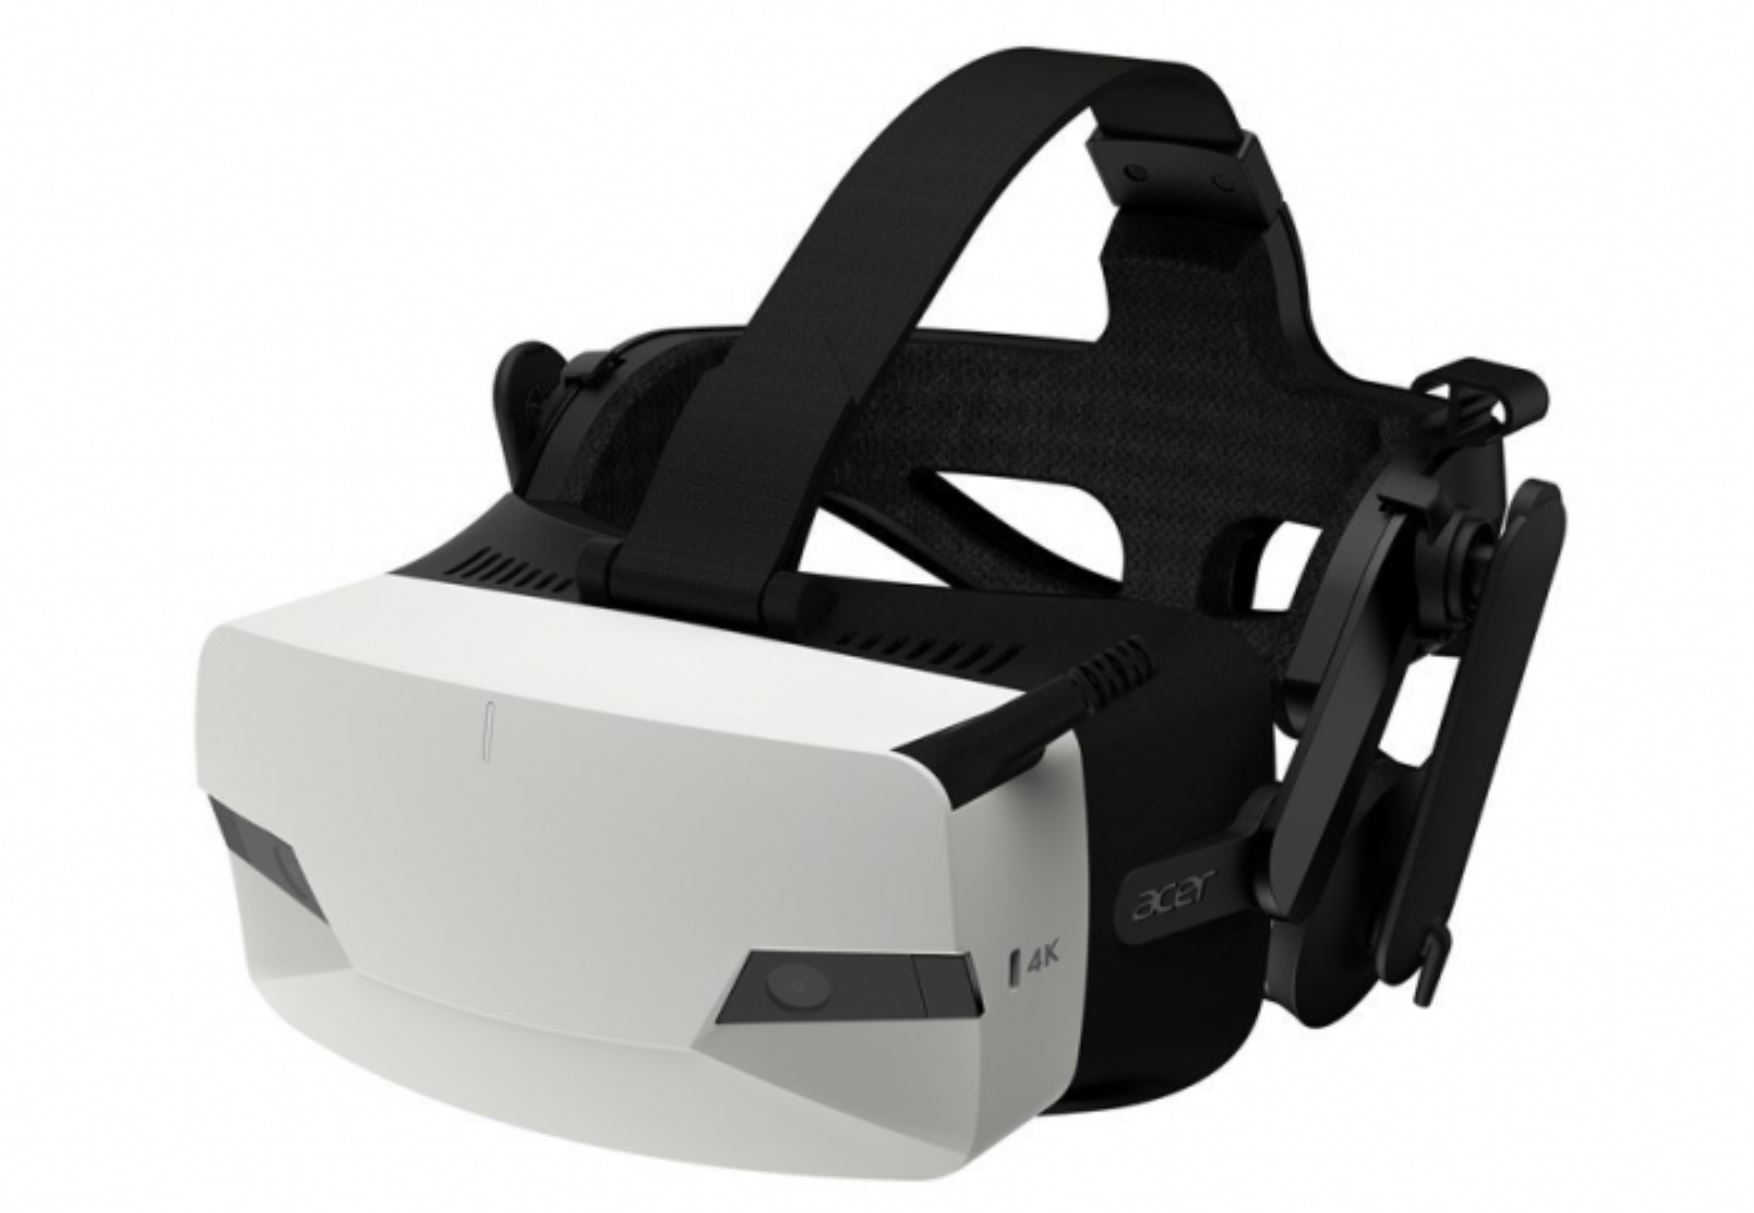 Acer enters high-end VR headset market with its new ConceptD OJO 1